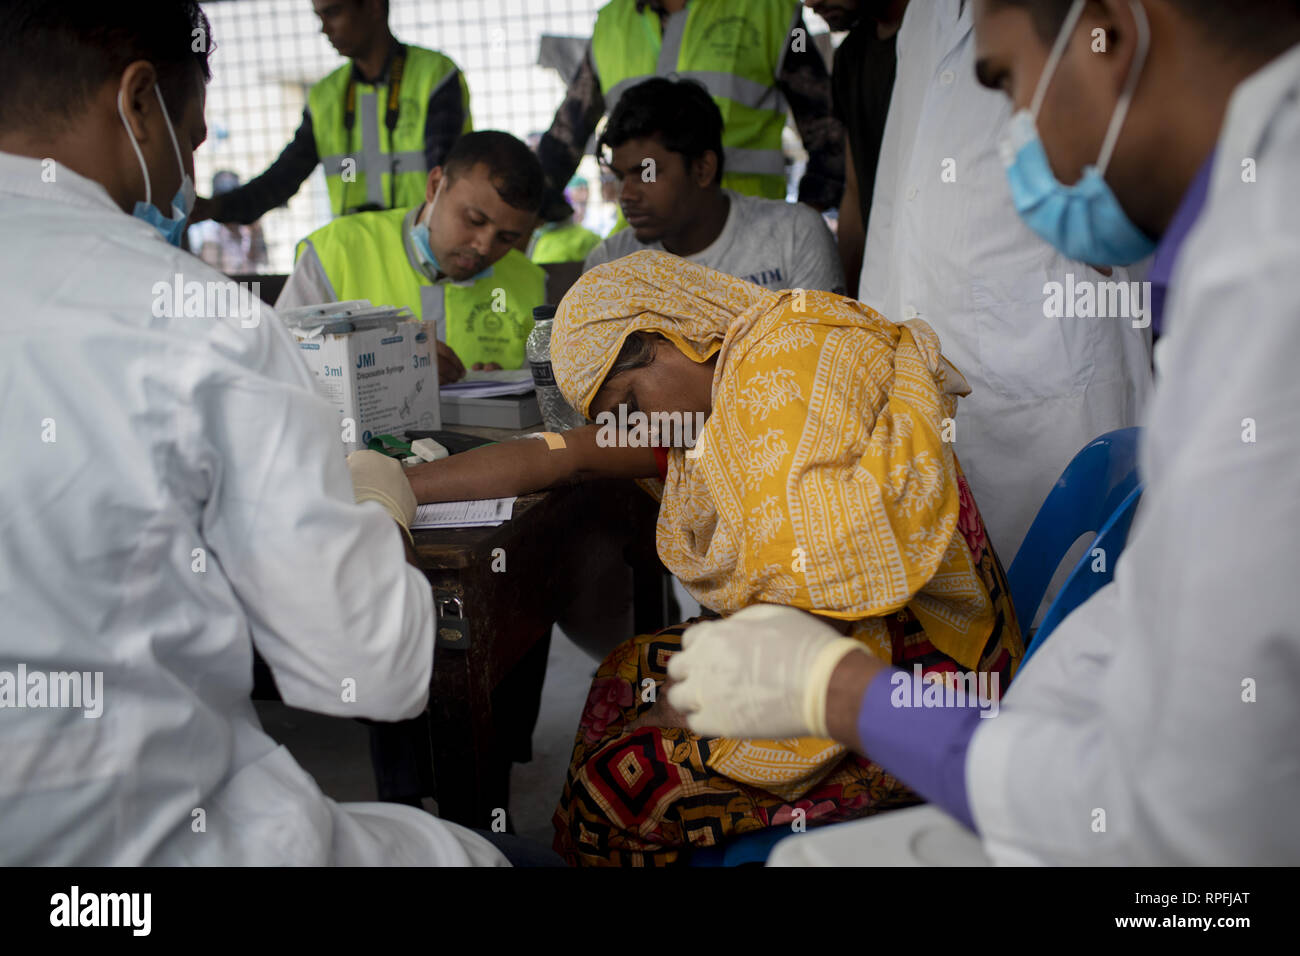 """Dhaka, Bangladesh. 22nd Feb, 2019. February 22, 2019 Dhaka, Bangladesh ''"""" Relatives give blood as a DNA test to identify there lost family member in Dhaka medical hospital. At least 70 people have been killed and 40 injured after this massive blaze in Chawkbazar, Dhaka. Credit: KM Asad/ZUMA Wire/Alamy Live News - Stock Image"""